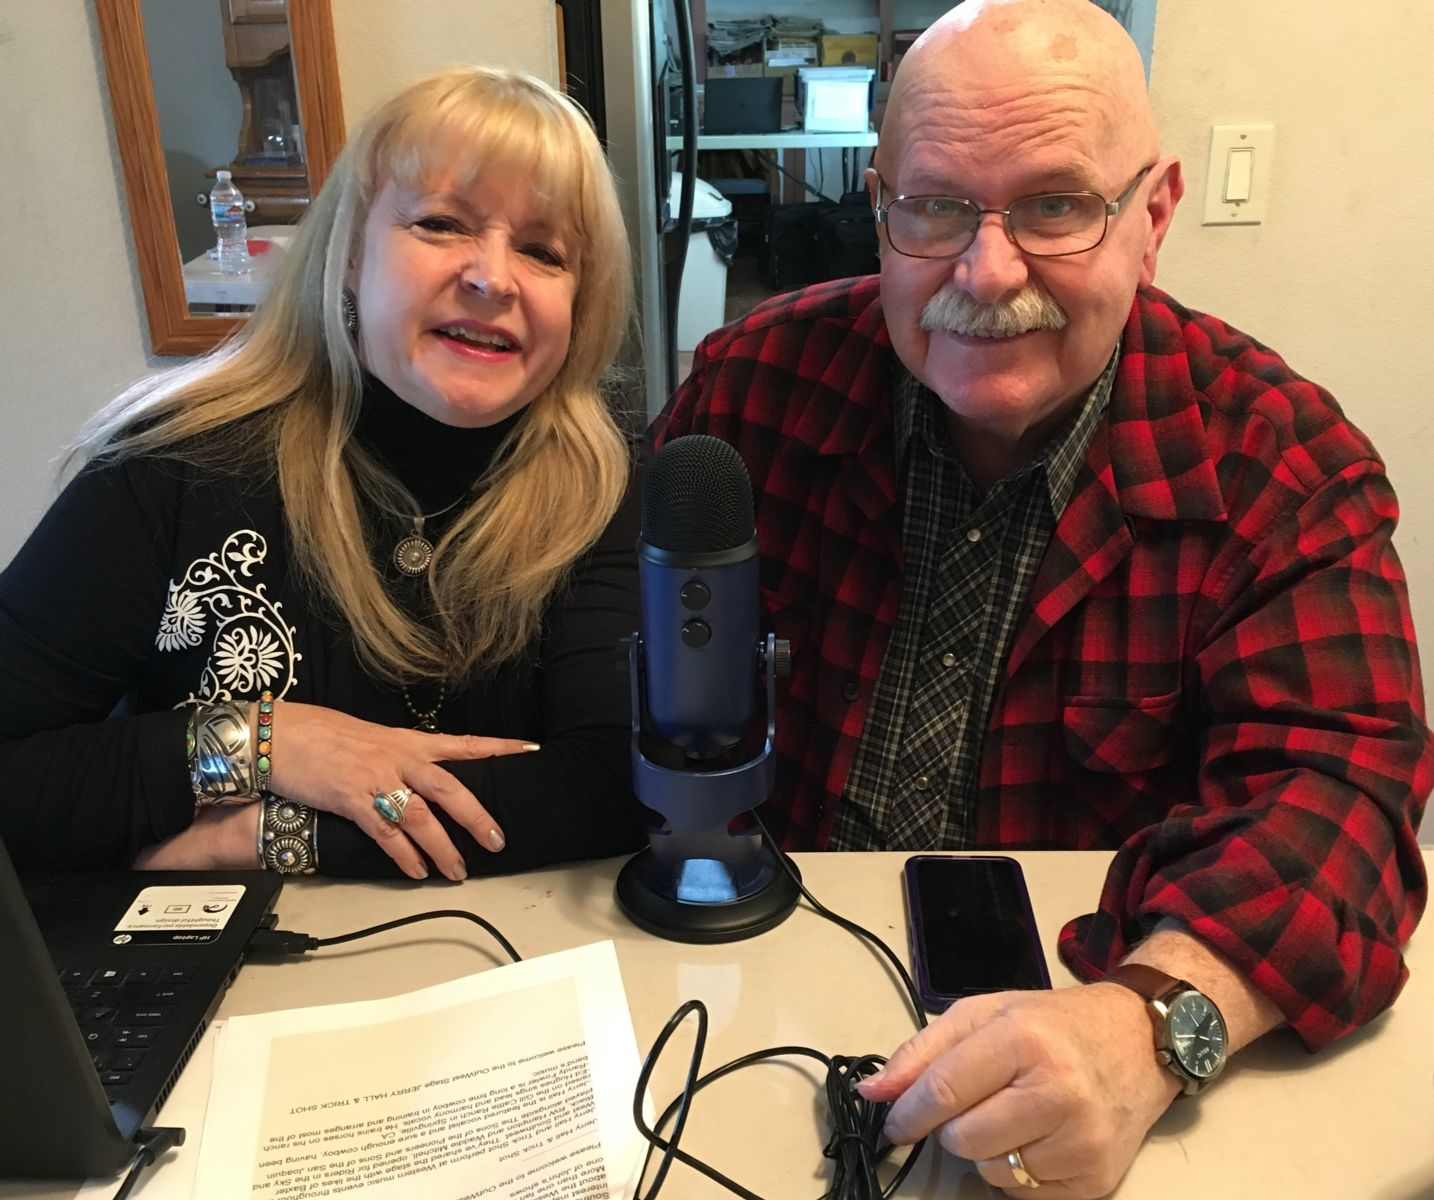 Bobbi Jean Bell and John Bergstrom OutWest Hour Radio, April 20, 2019